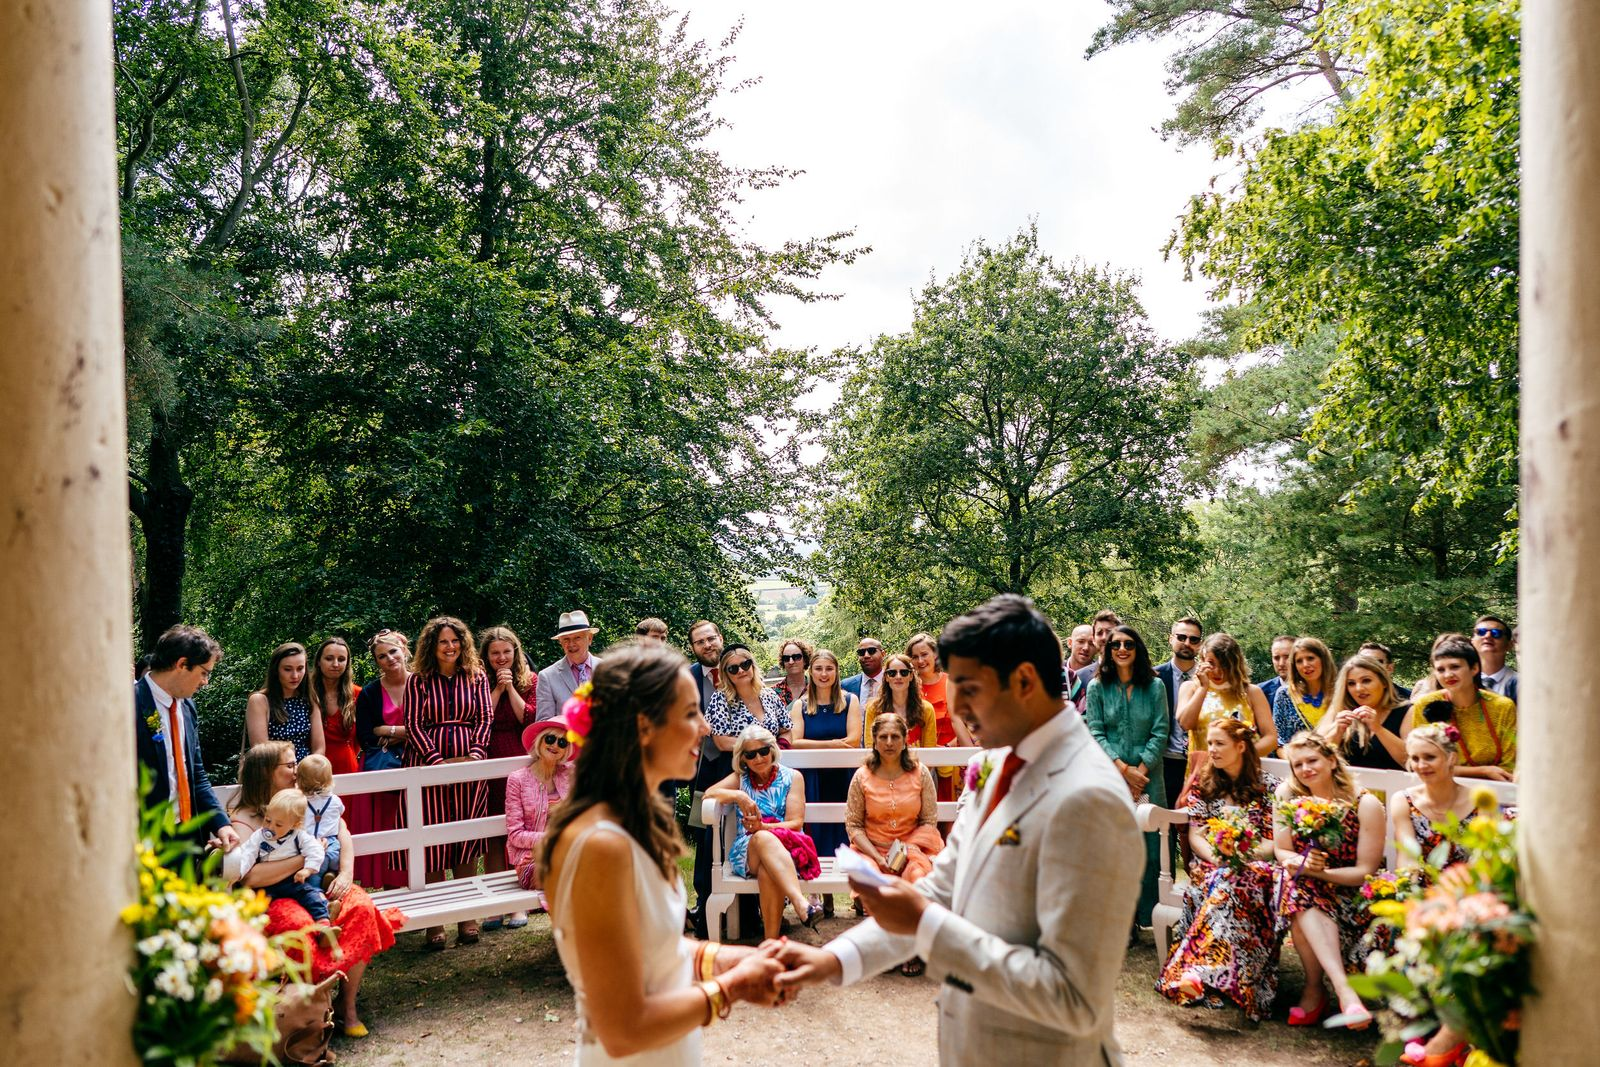 outdoor wedding ceremony at Hestercombe Gardens in Somerset